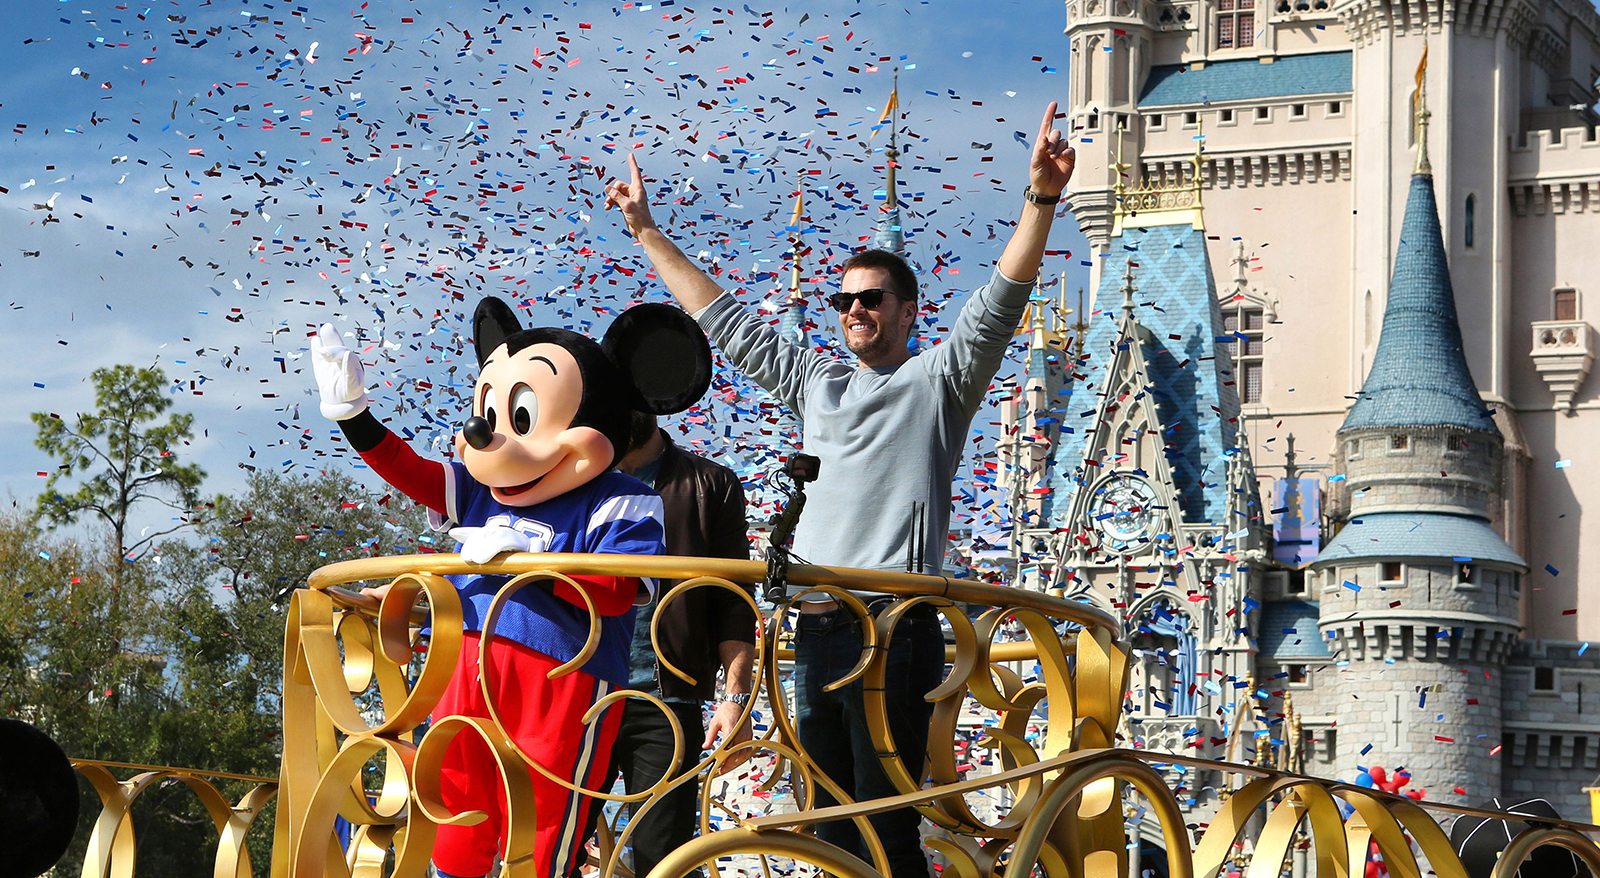 Super Bowl LIII winning quarterback Tom Brady of the New England Patriots celebrates with Mickey Mouse in the Super Bowl victory parade in the Magic Kingdom at Walt Disney World, in Lake Buena Vista, Florida, on February 4, 2019.